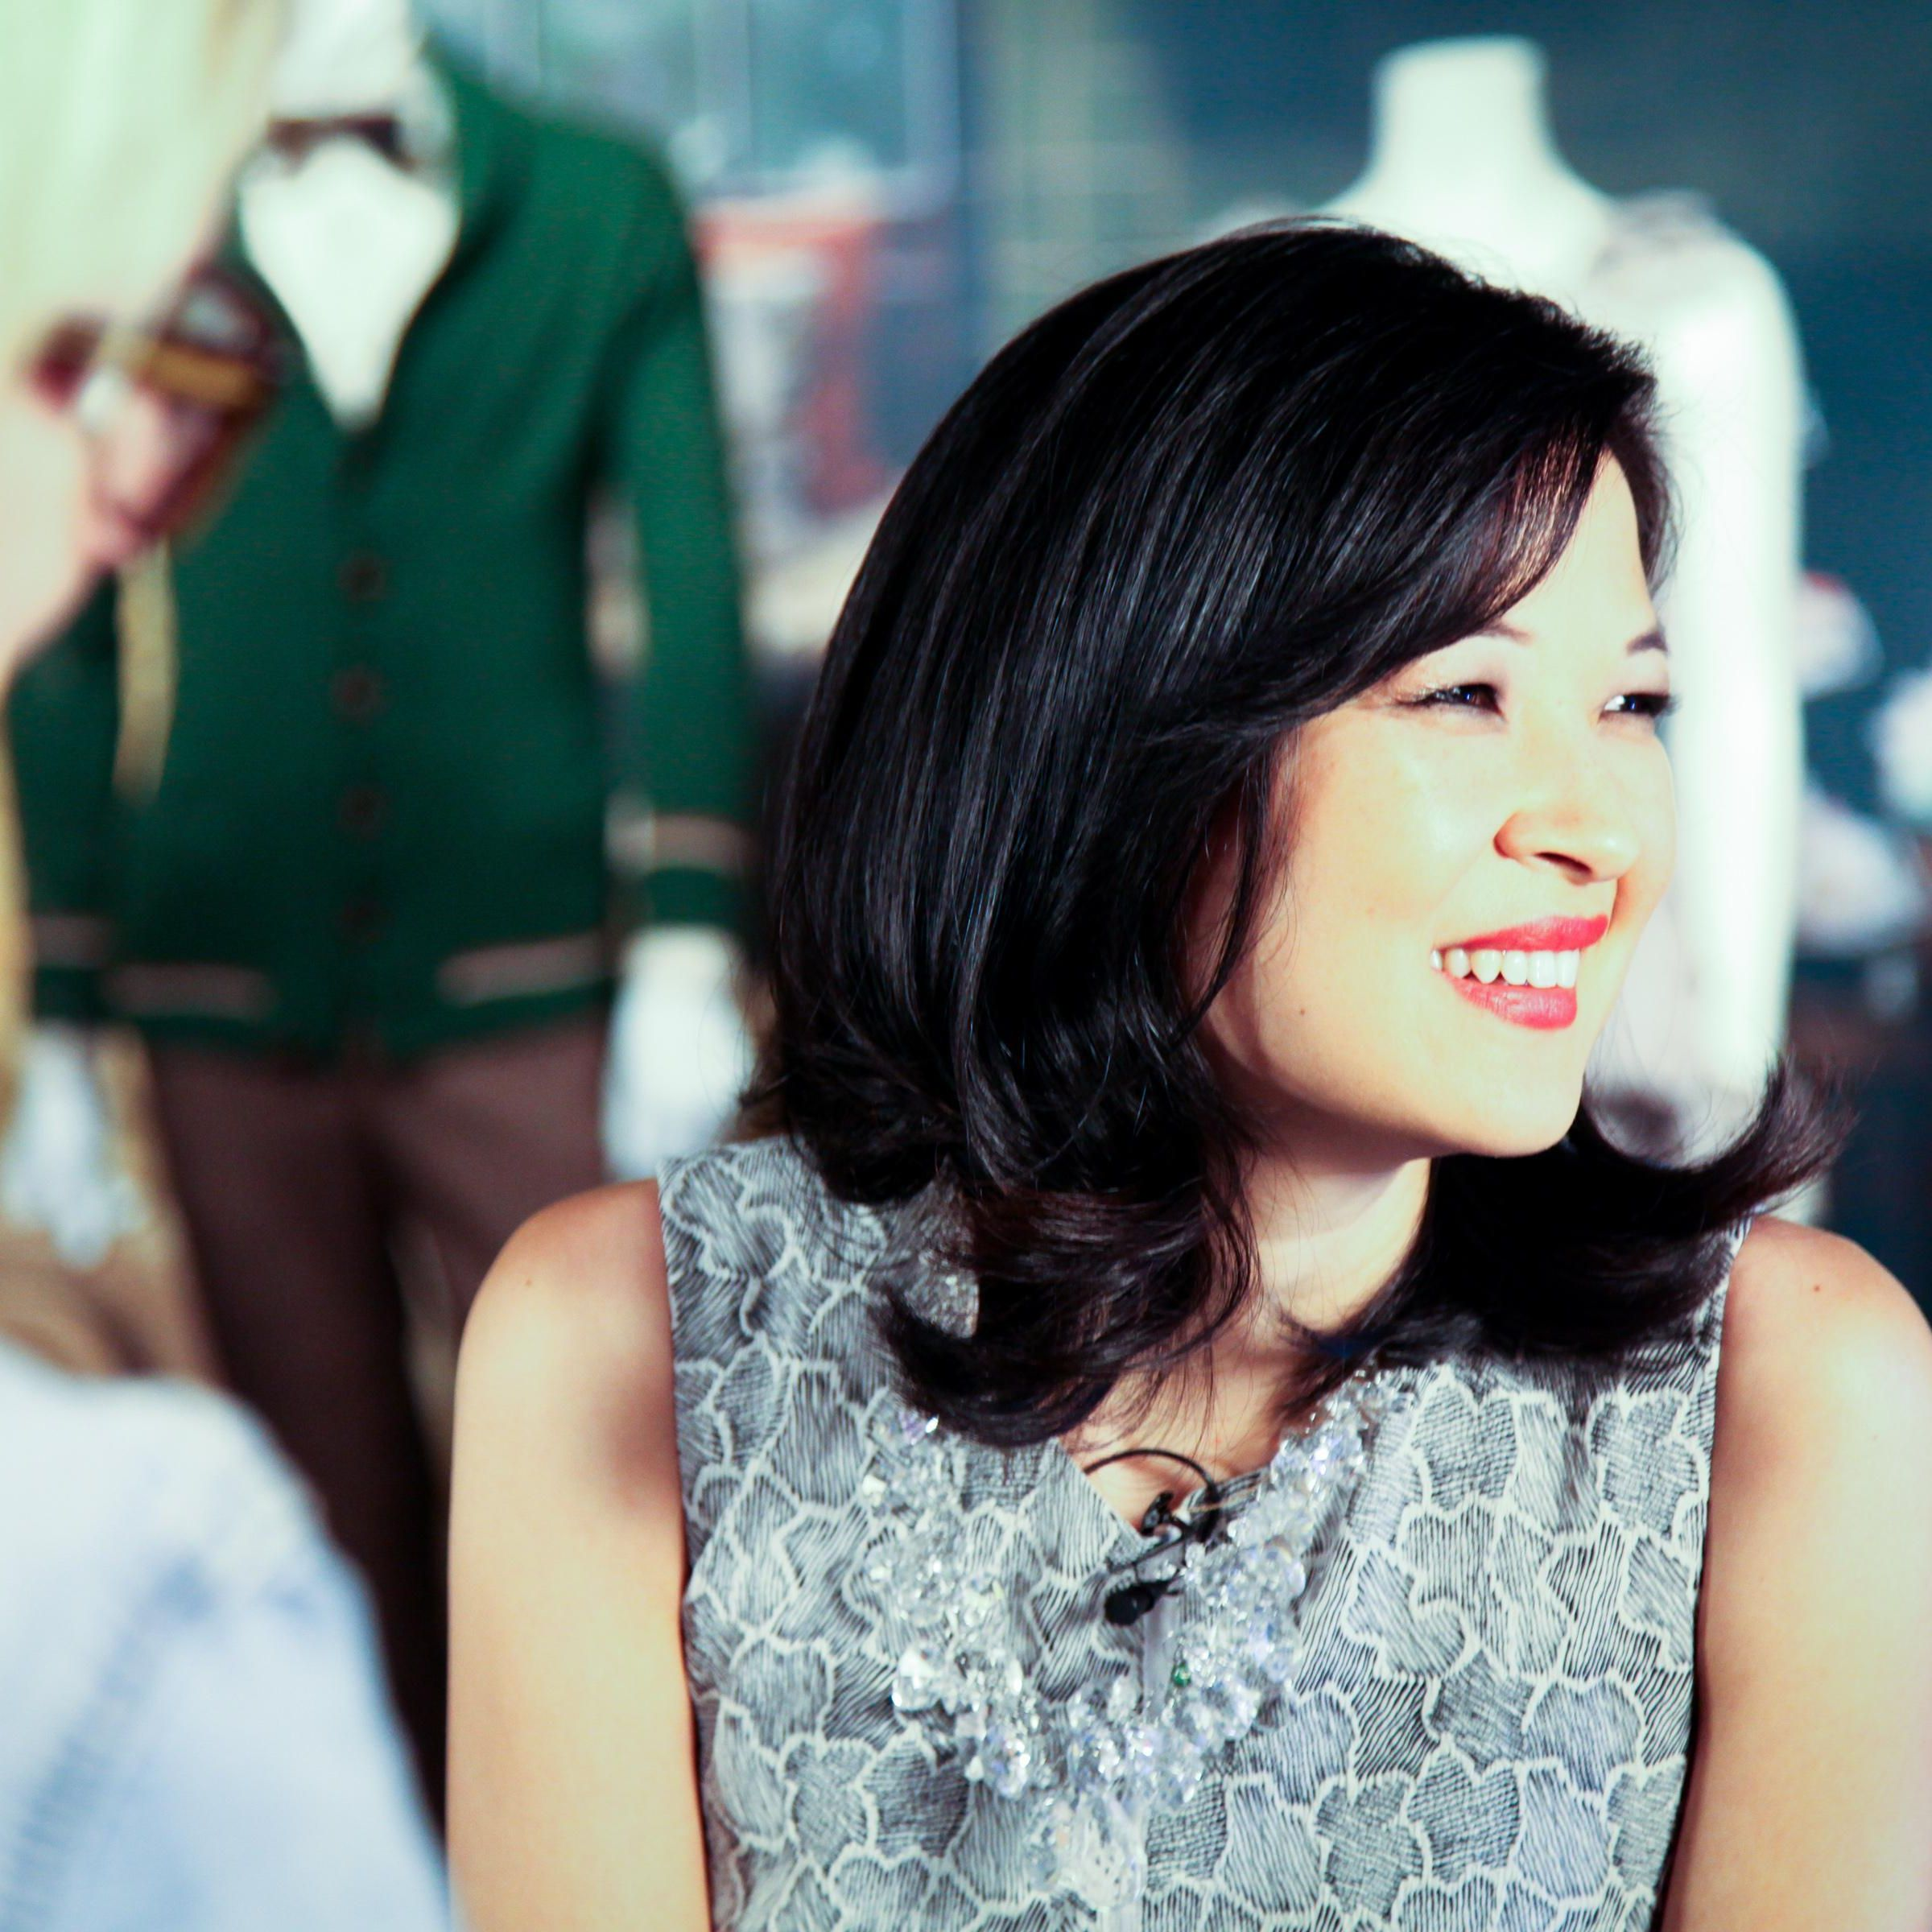 SuChin Pak, the on-air correspondent for Daily Candy, picks a cinematic look that goes well with a hidden mic.